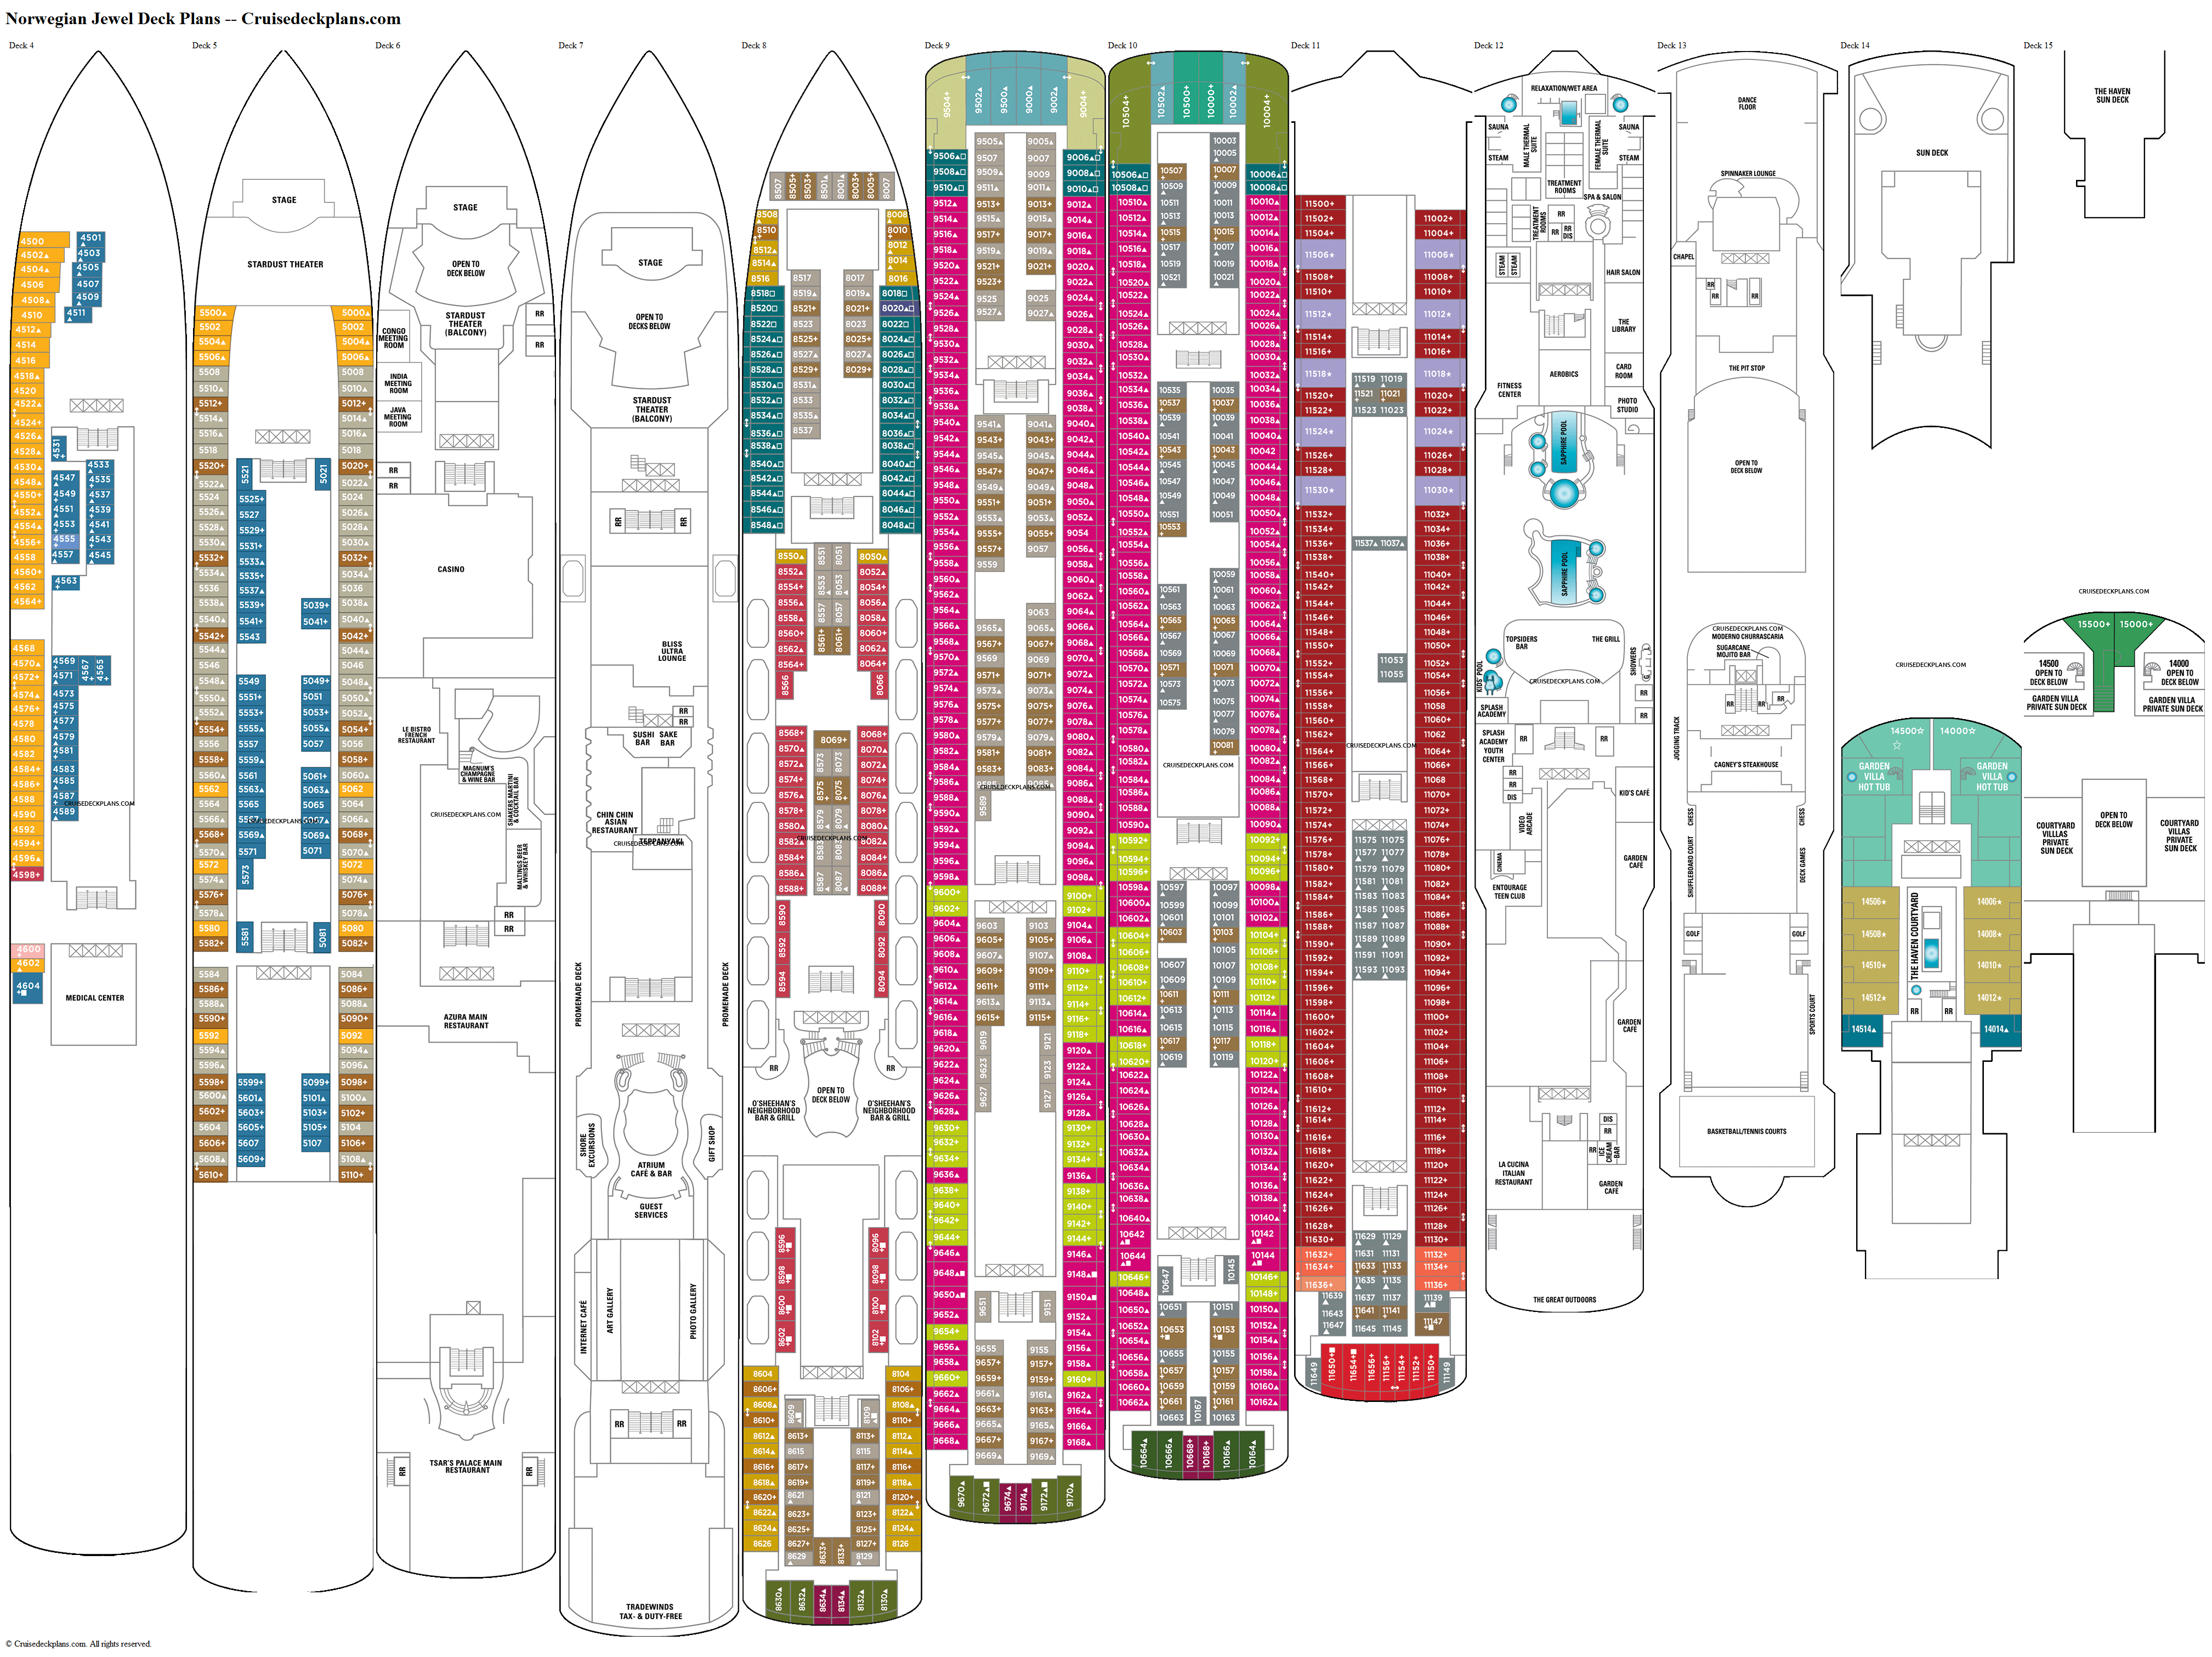 Norwegian Jewel deck plans image